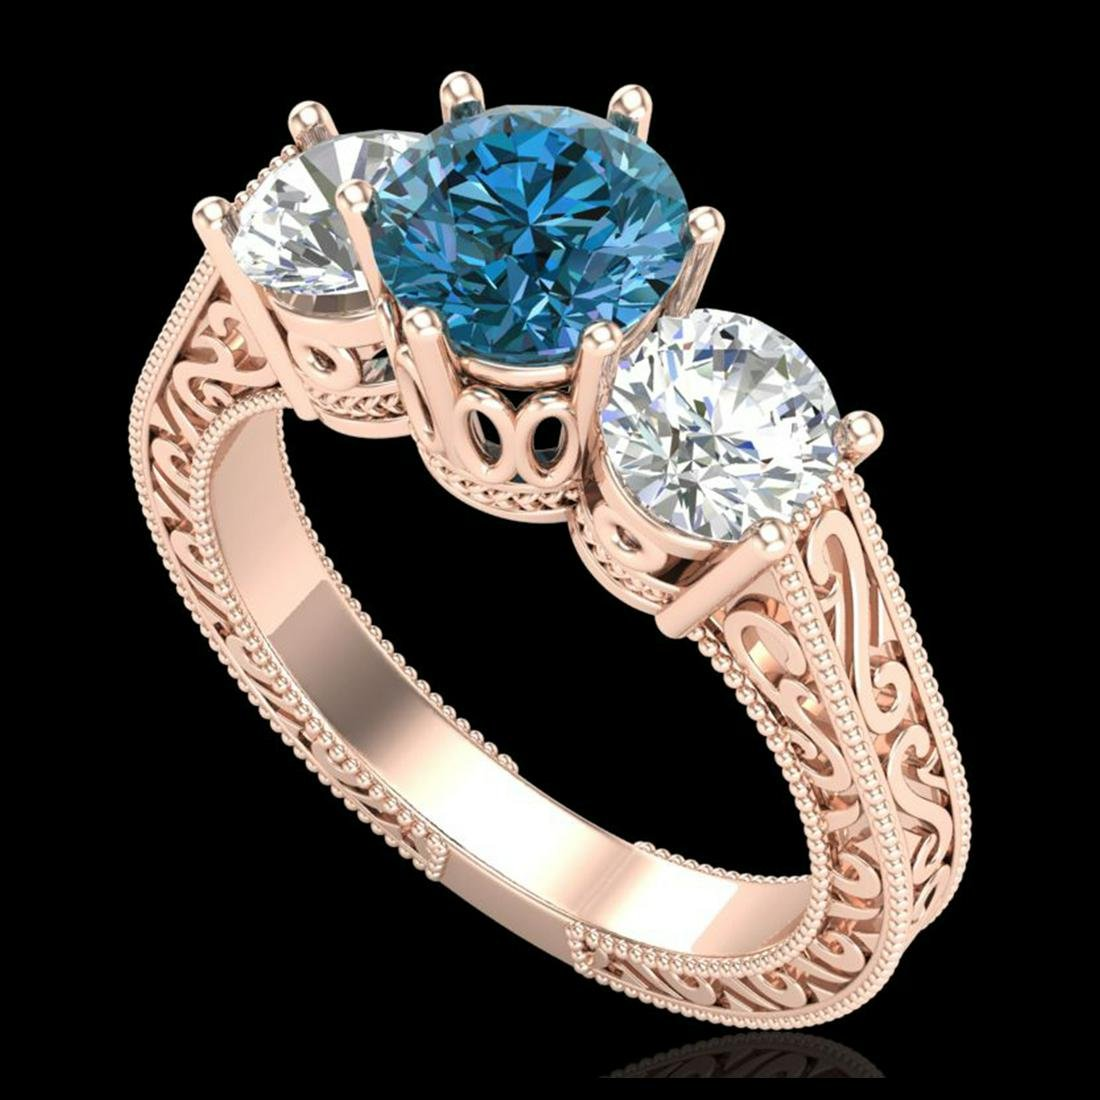 2.01 ctw Fancy Intense Blue Diamond Art Deco Ring 18K